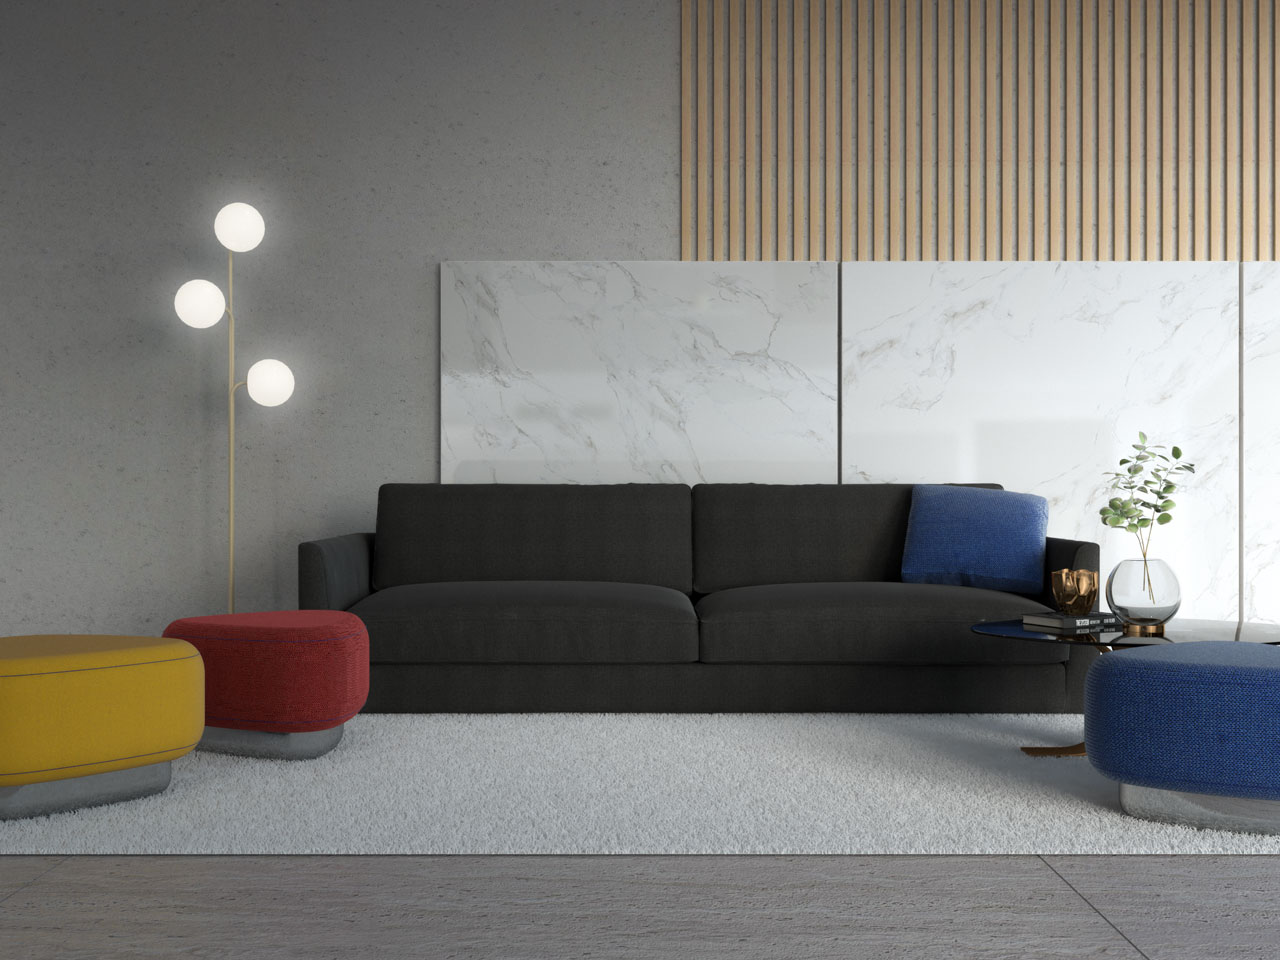 Colorful ottoman around black couch